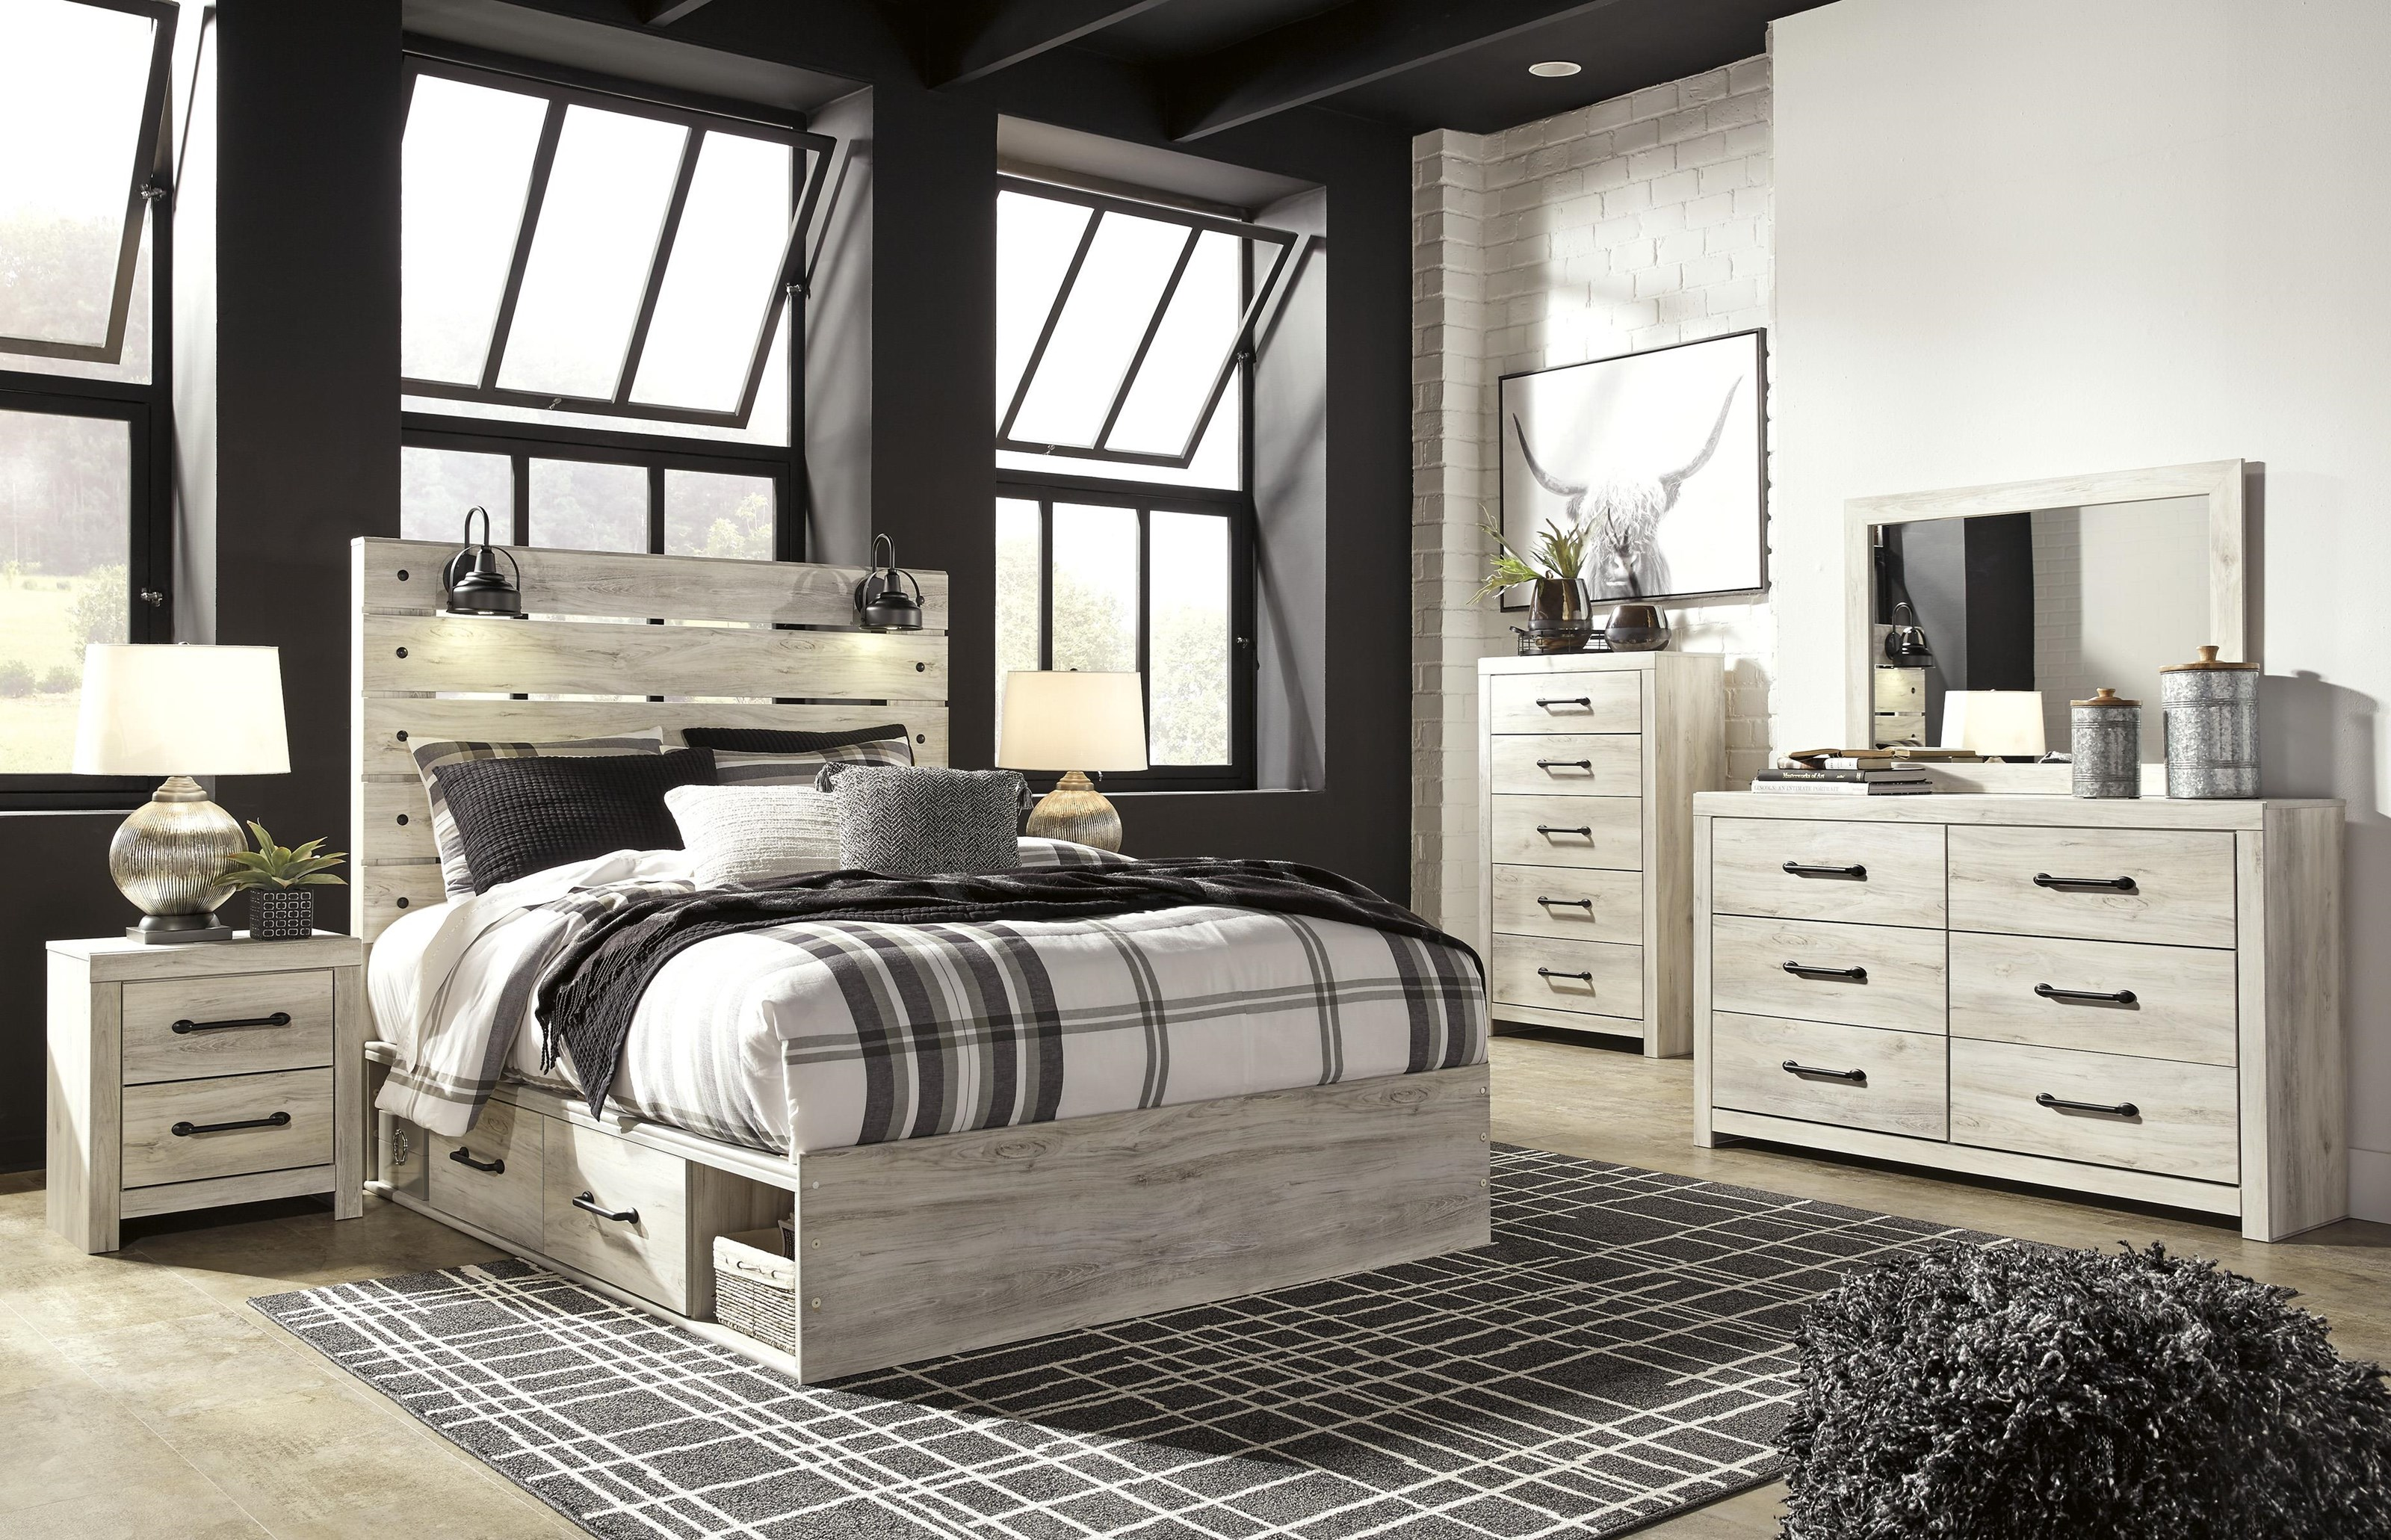 Cambeck 7 Piece King Panel Bedroom Set by Signature Design by Ashley at Sam Levitz Outlet